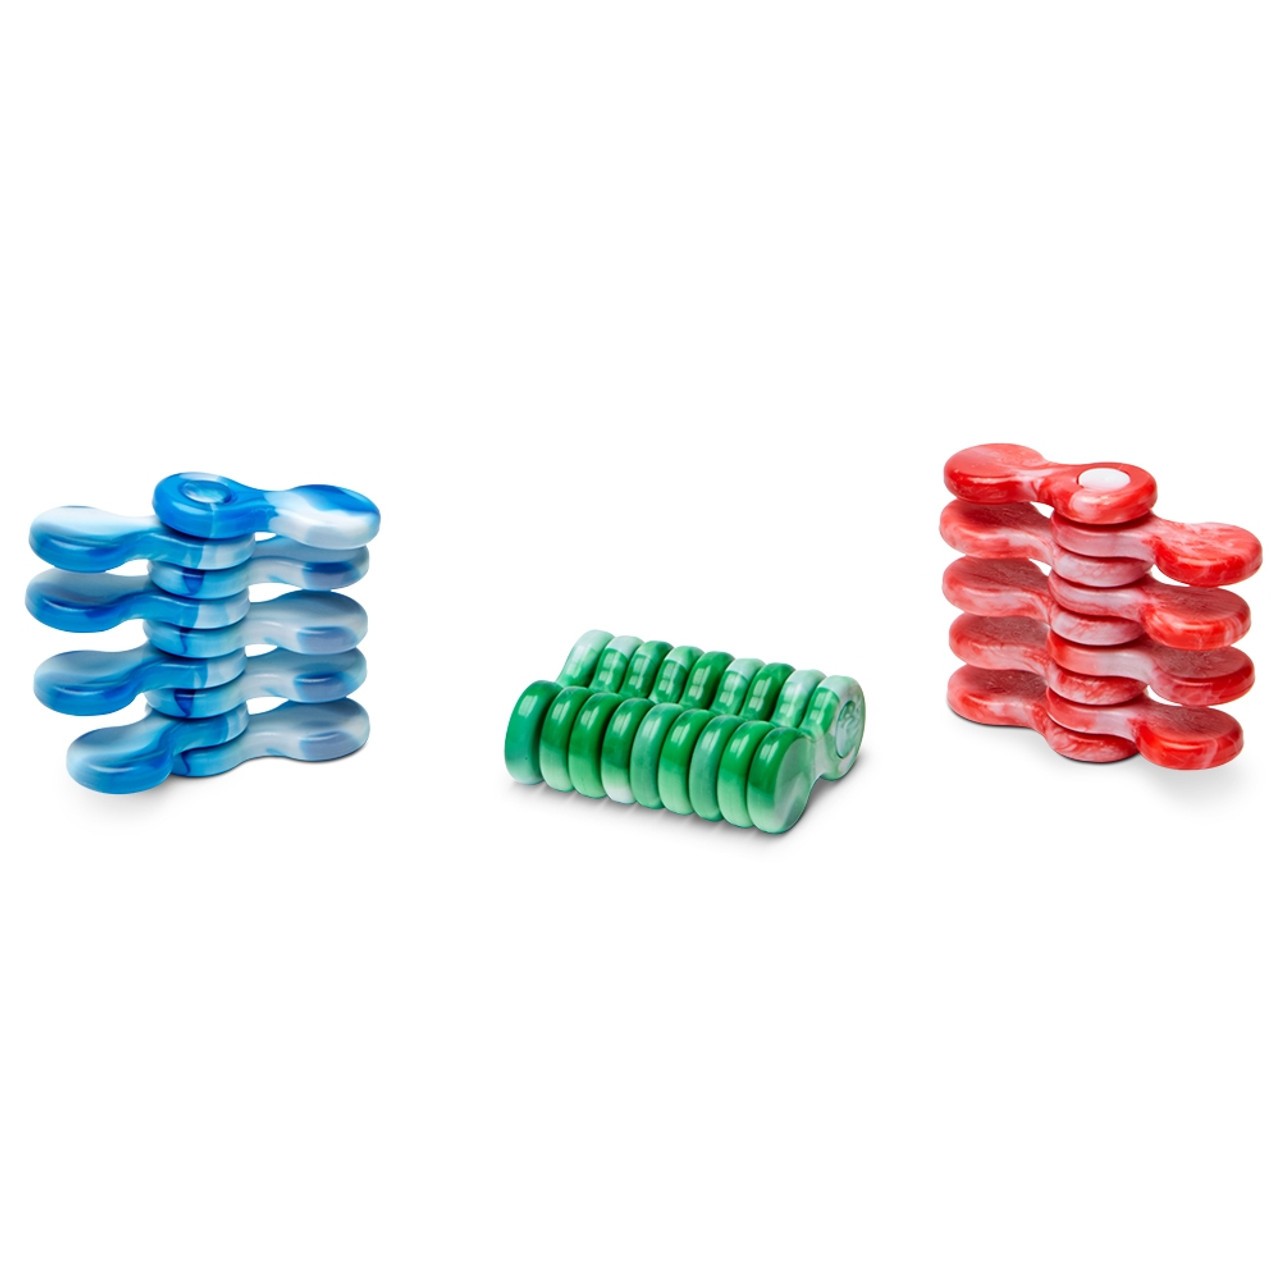 Helix Fidget Toy; assorted colors